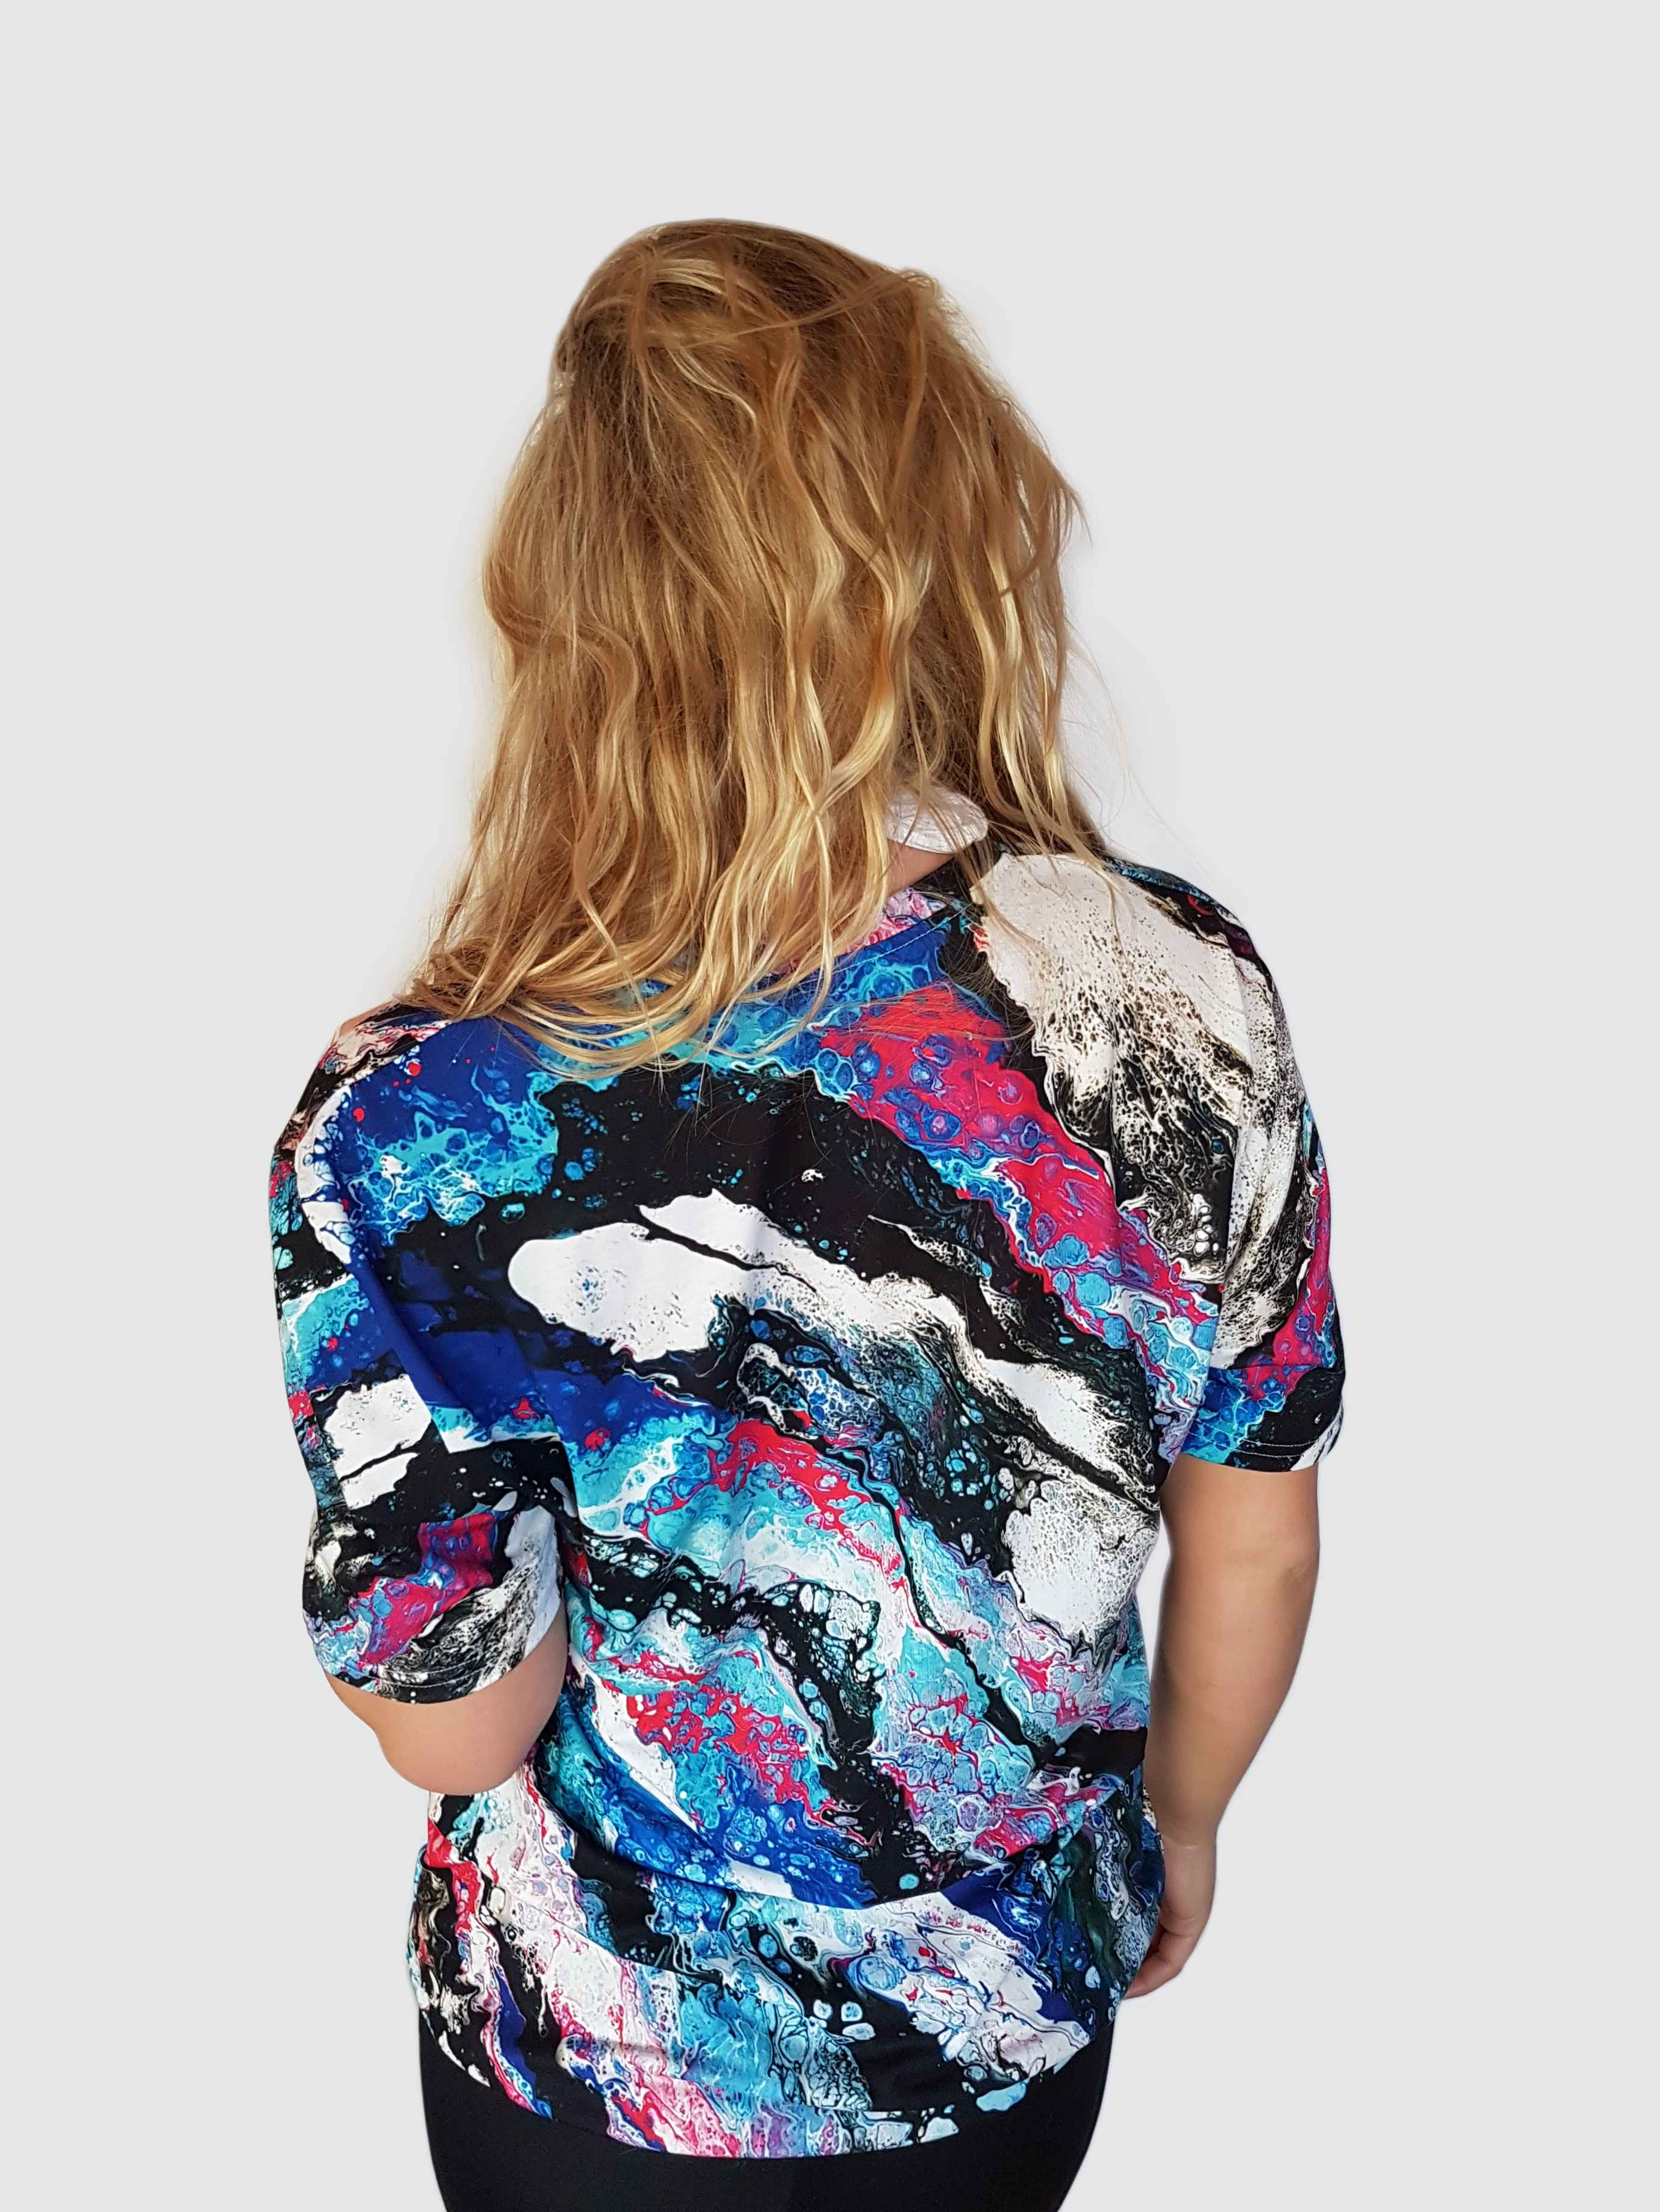 women's blue t-shirt with an aquatic print depicting the ocean or sea